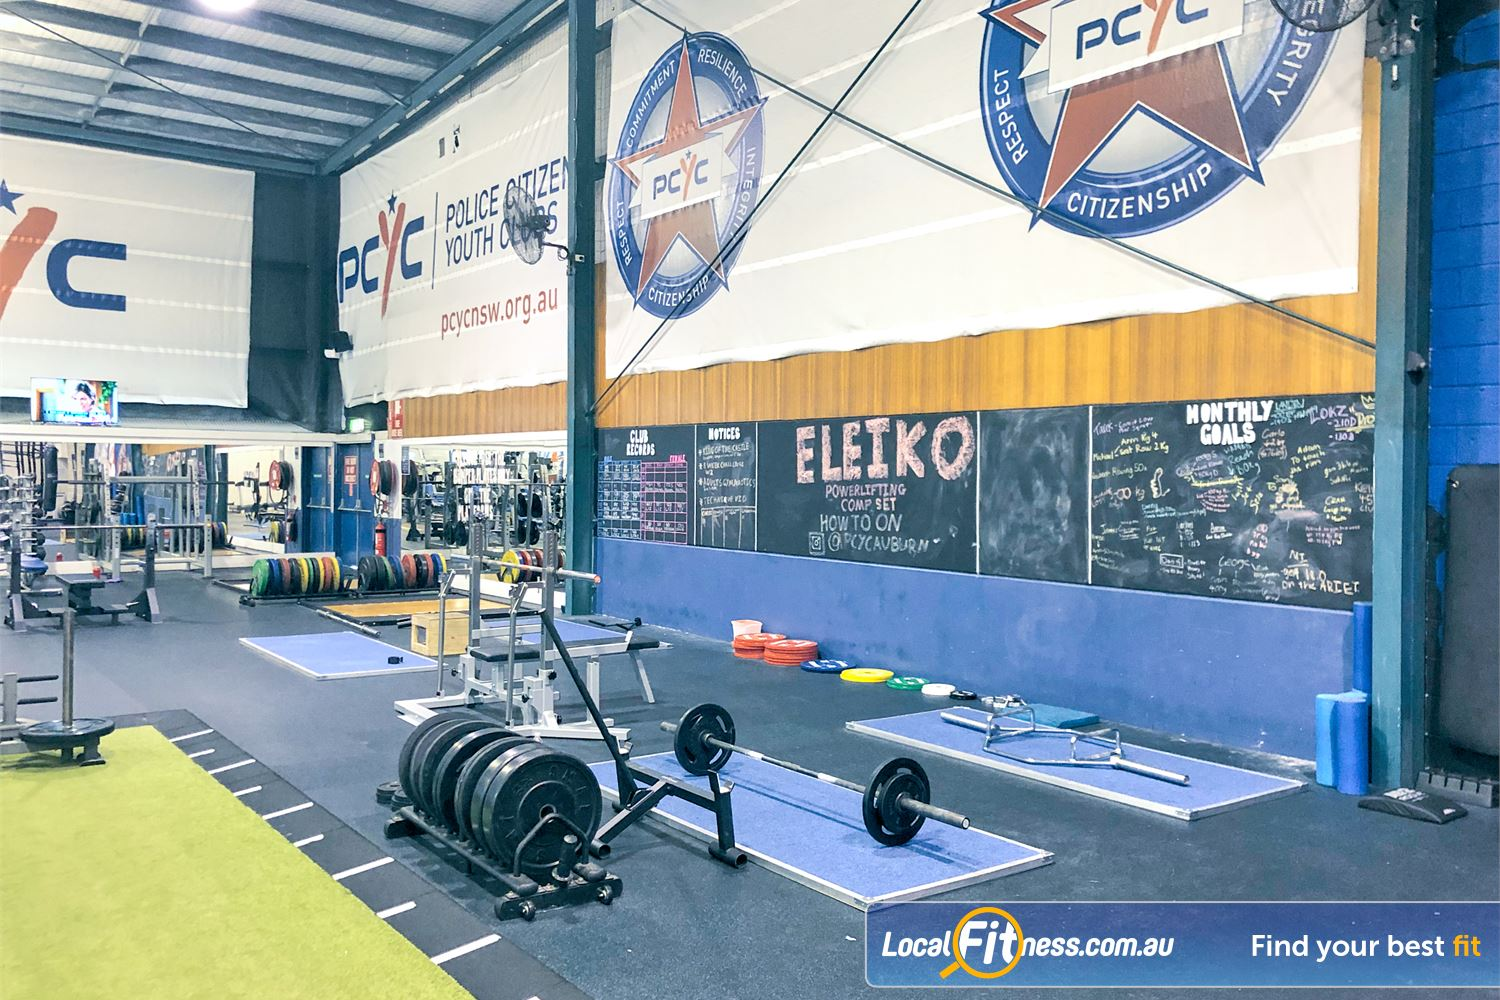 PCYC Auburn Lidcombe The powerlifting area includes multiple deadlift platforms.